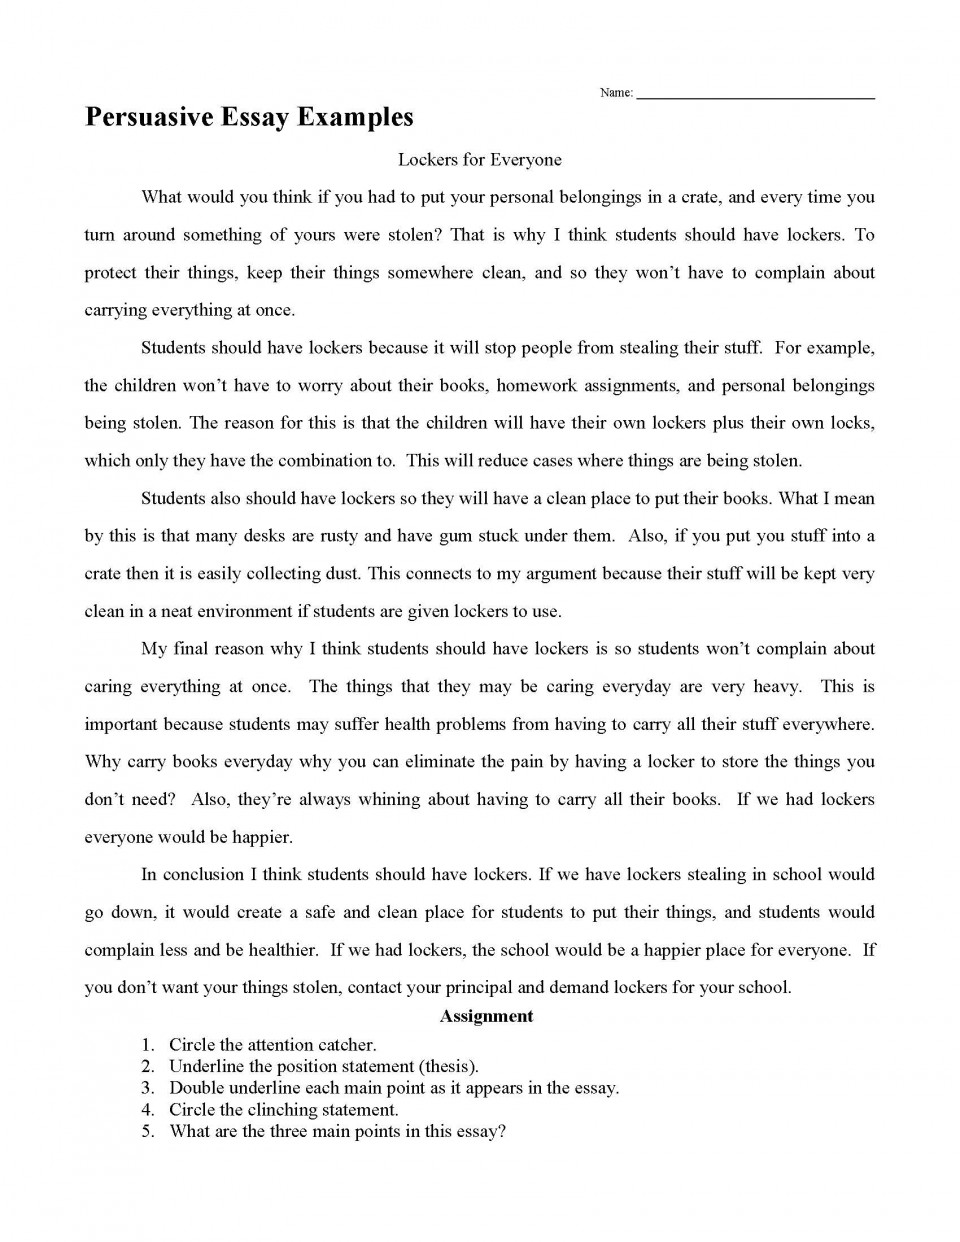 001 Persuasive Essays Impressive Essay Examples For Middle School Staar 960